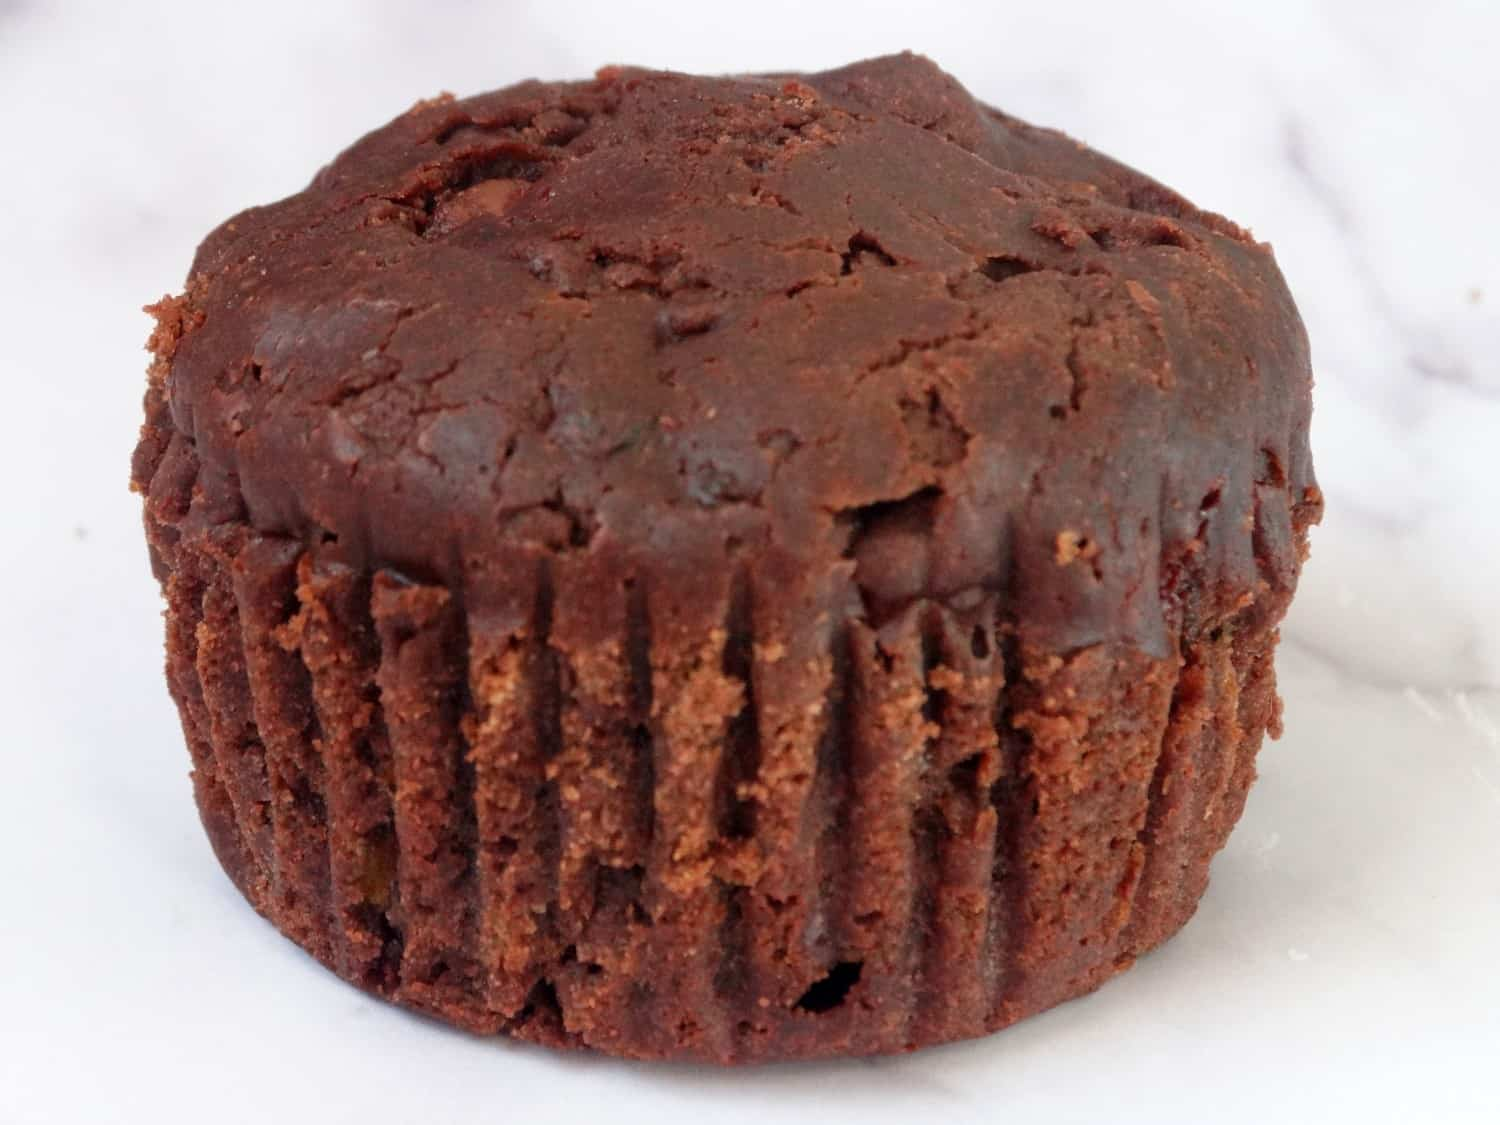 close up of a chocolate zucchini muffin on a white background